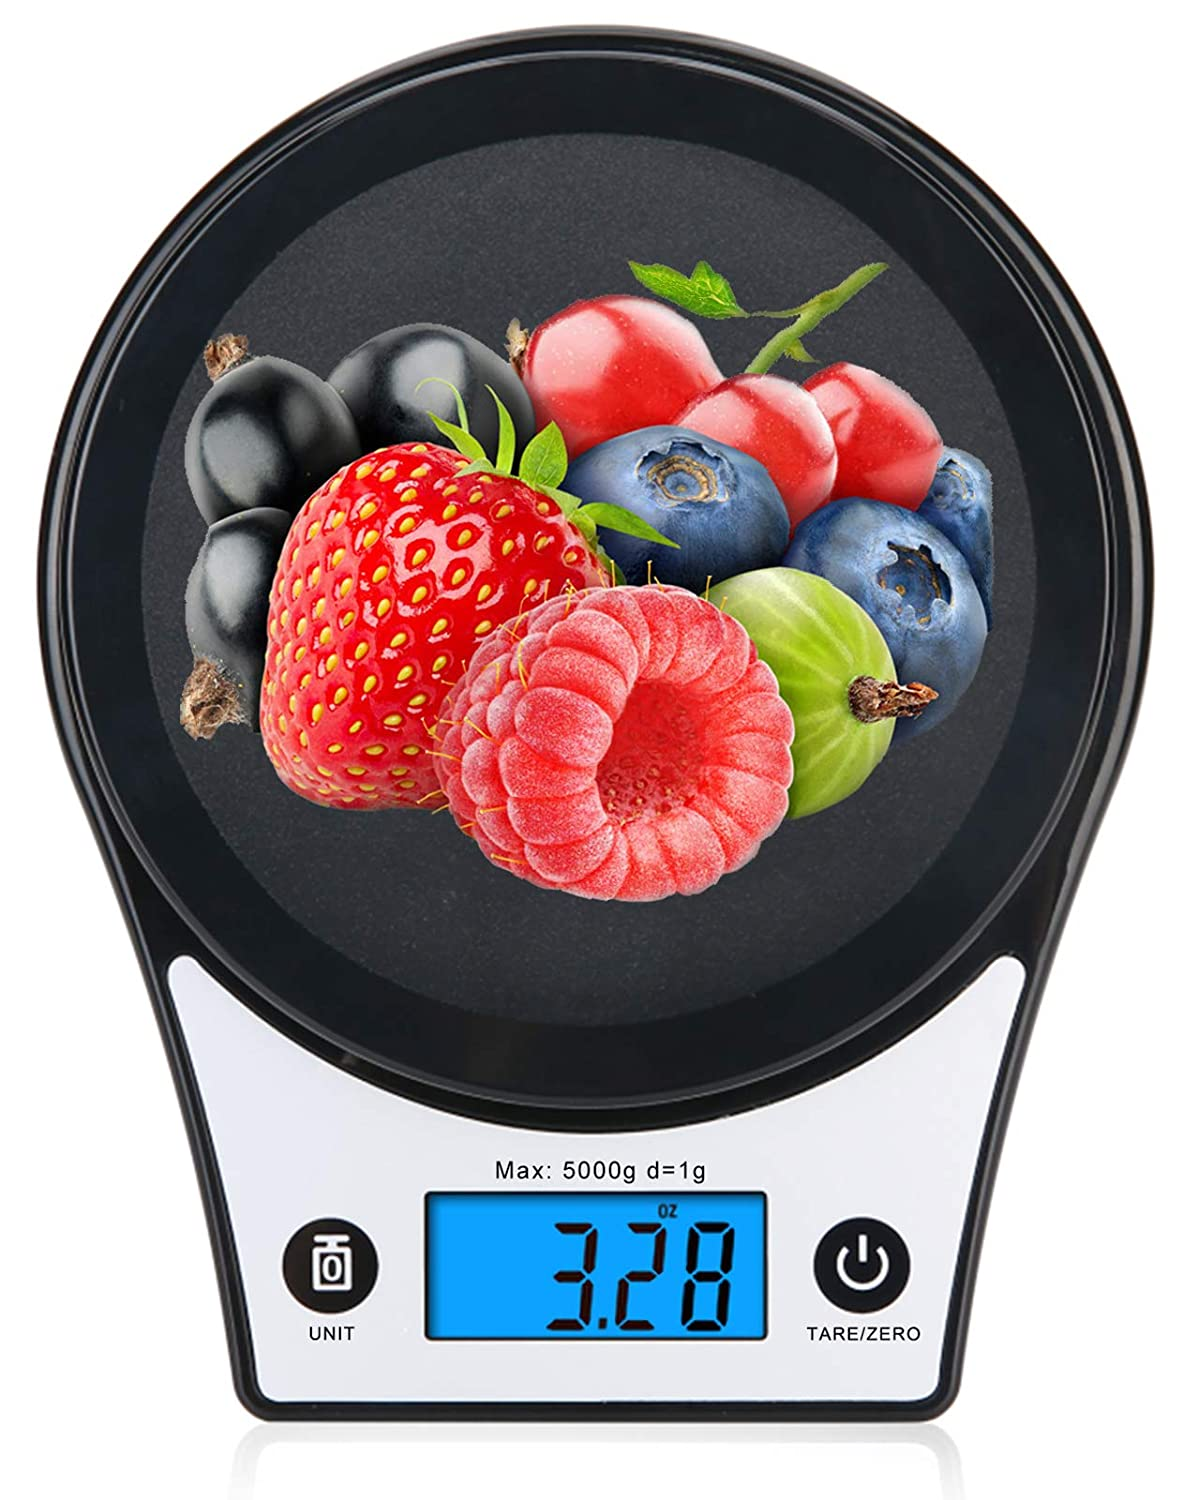 Ataller Digital Kitchen Scale, Multifunction Kitchen Food Scale with Tare Zero & Auto Off & Overlod & LCD Display for Baking and Cooking, 5kg/11lb